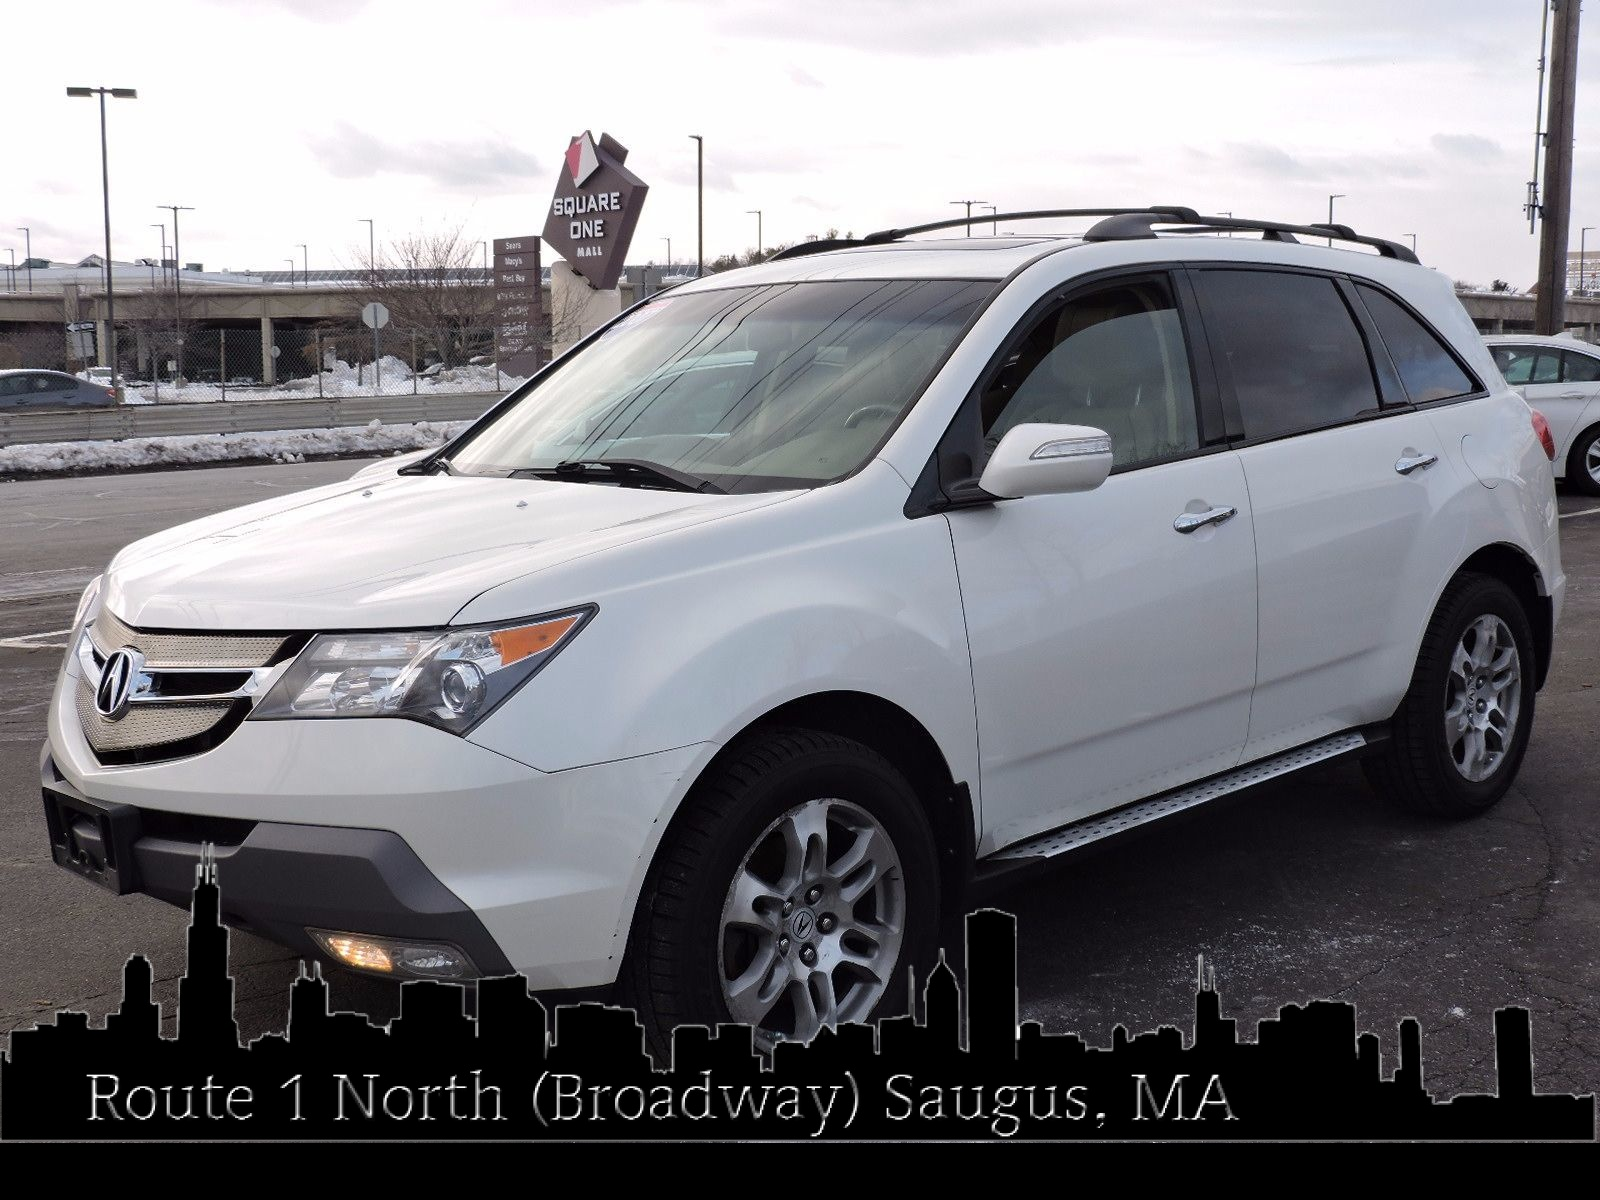 2007 Acura MDX - All Wheel Drive - Navigation - DVD